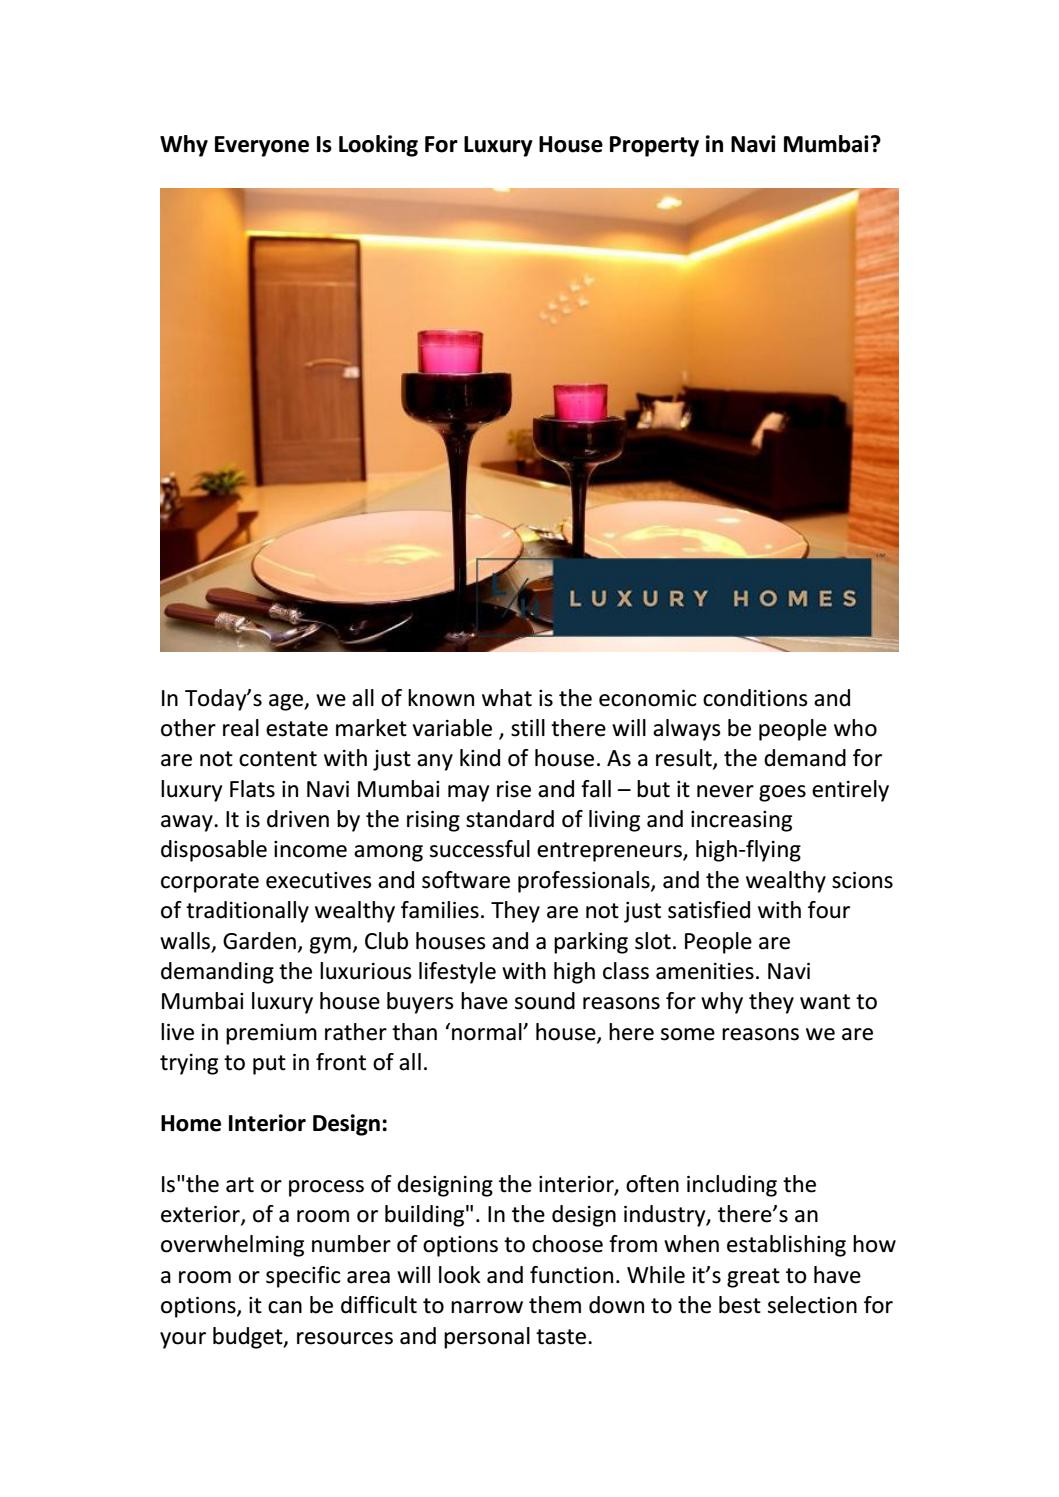 Why Everyone Is Looking For Luxury House Property In Navi Mumbai By Balaji Symphony Issuu